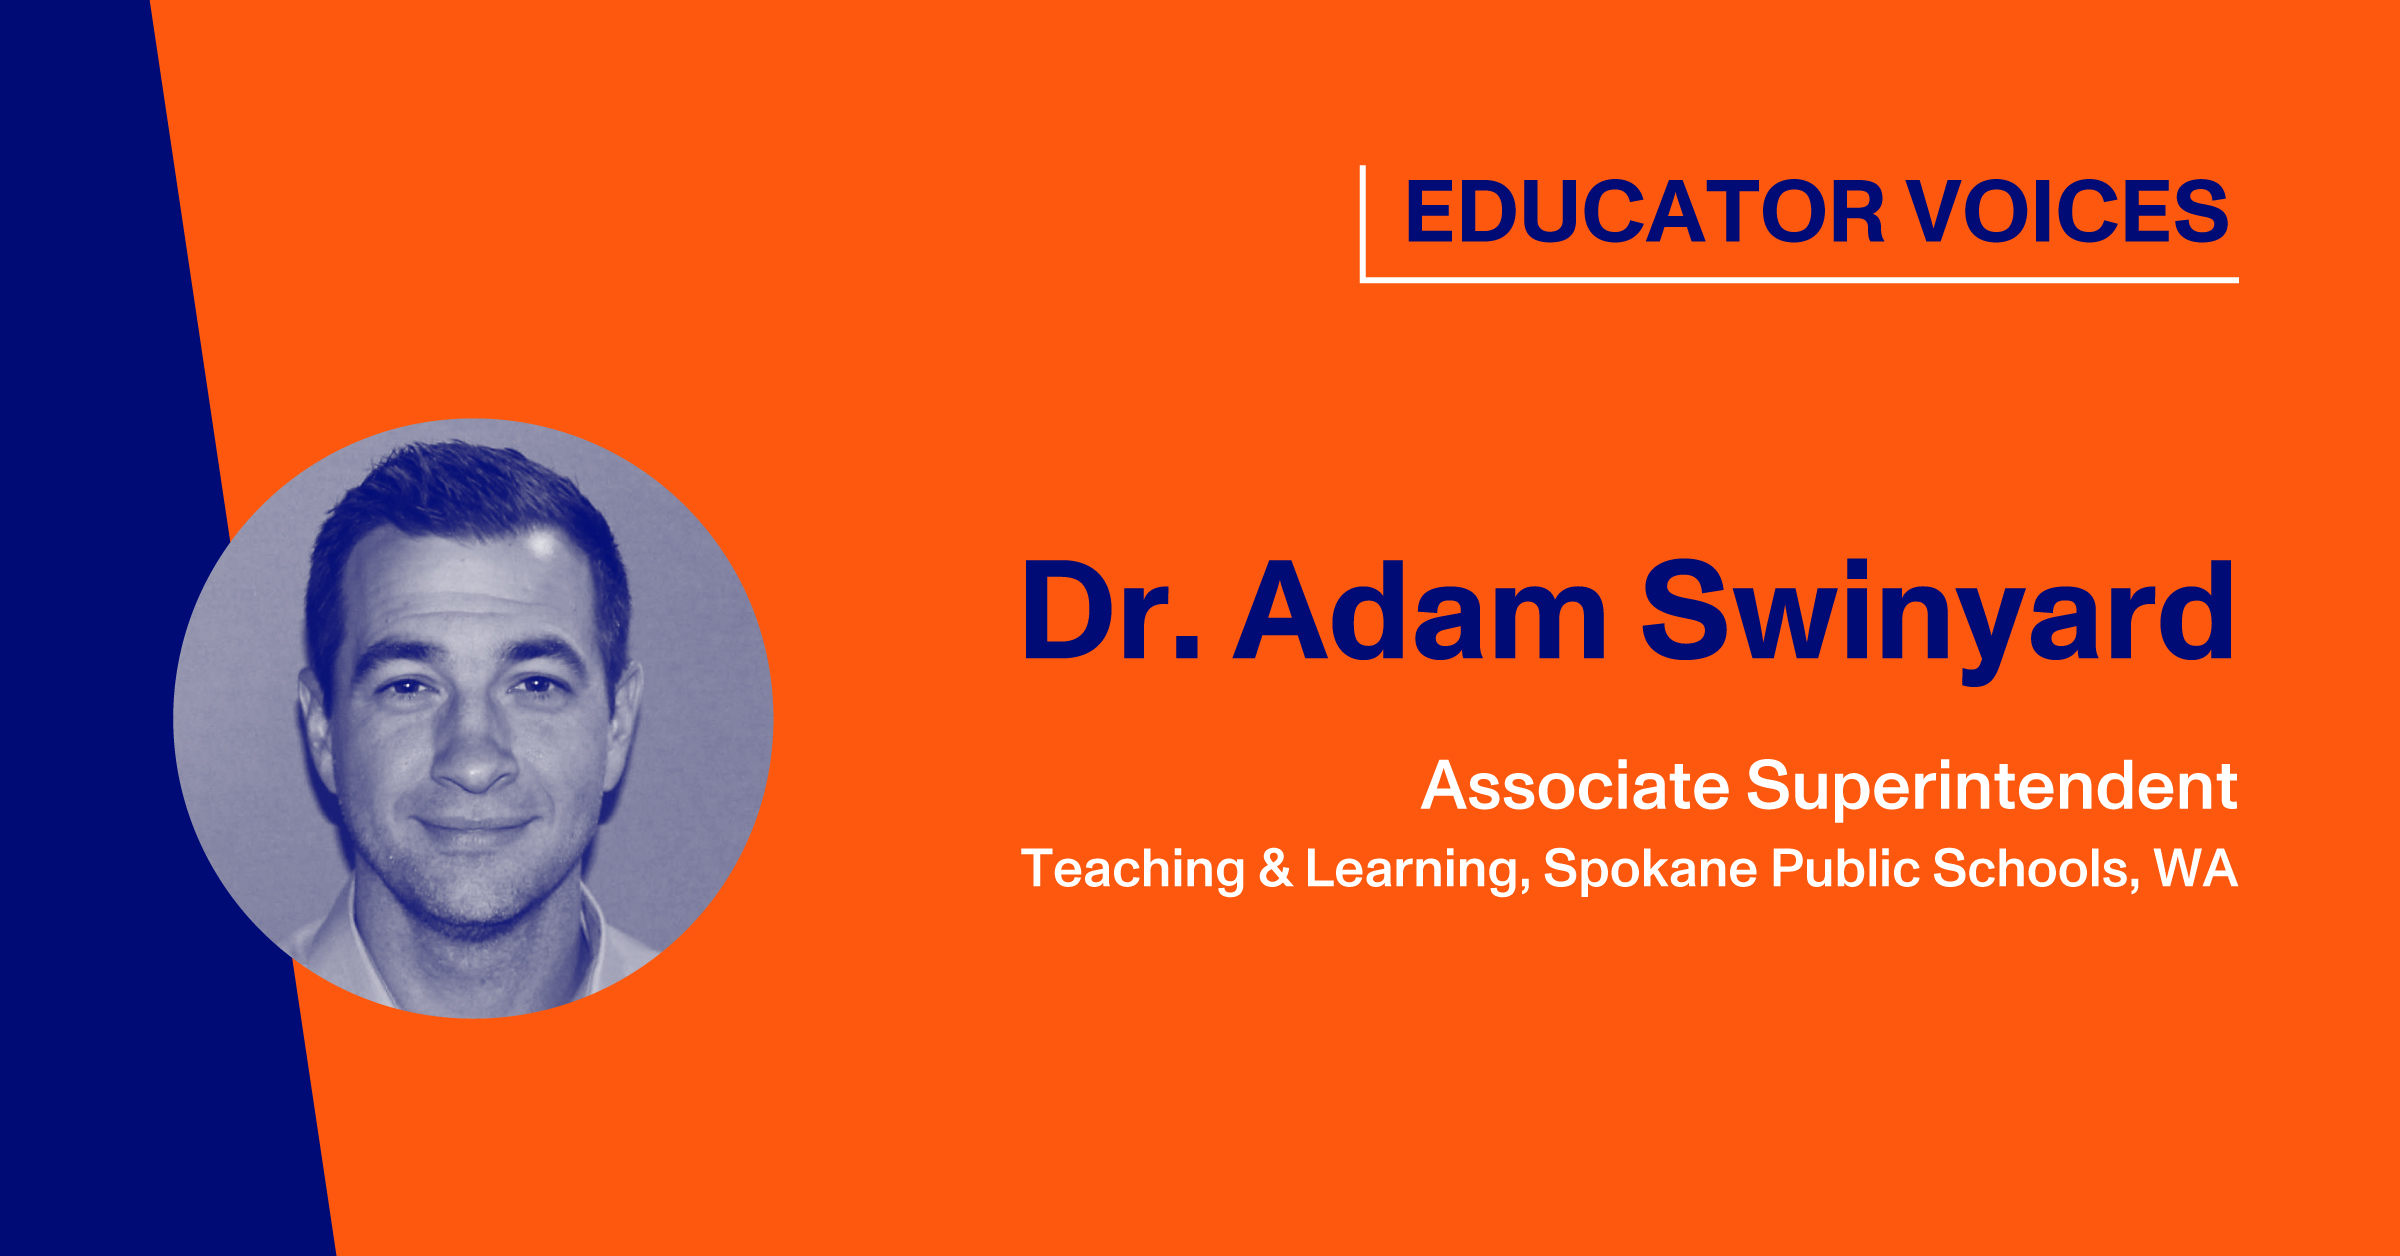 Blog Thumbnail with Headshot of Dr. Adam Swinyard